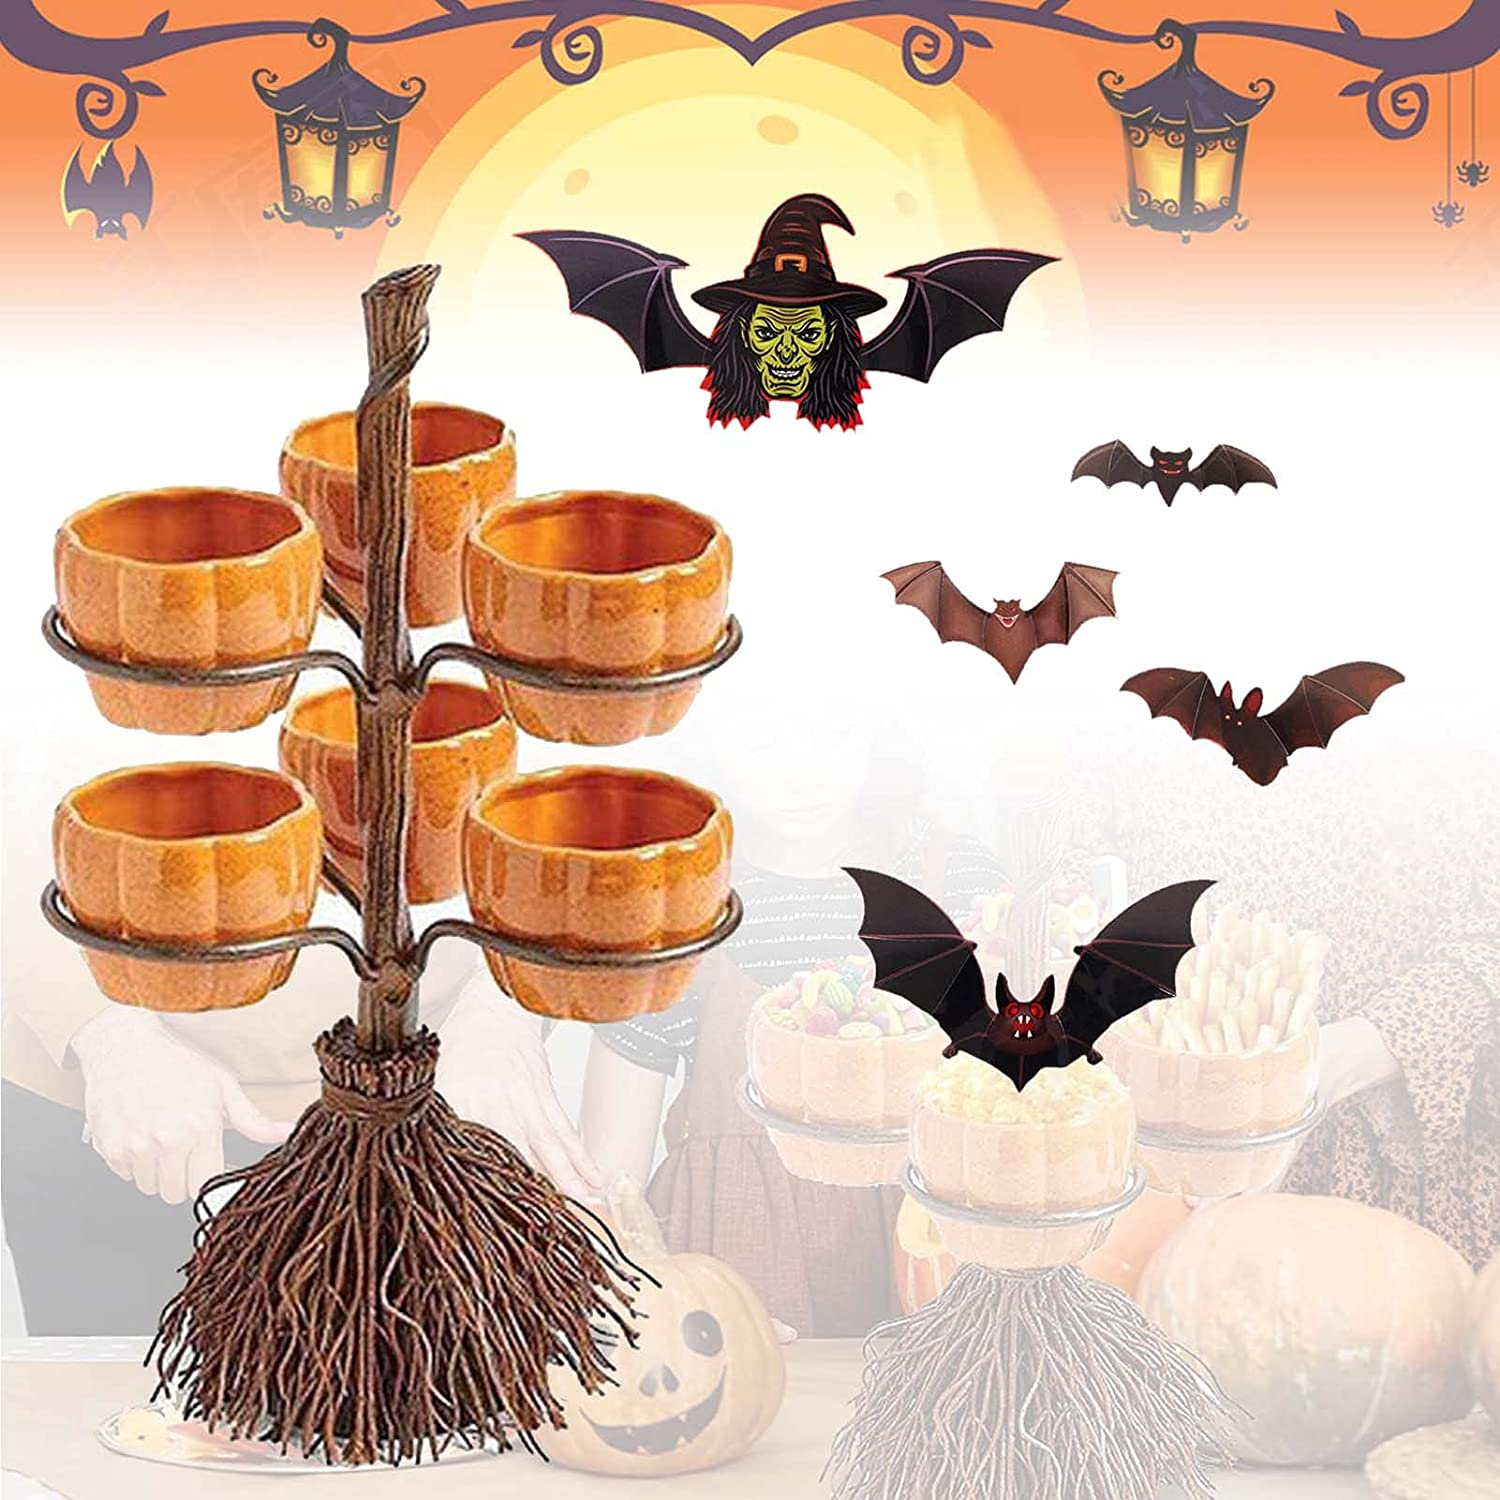 2021 Pumpkin Snack Bowl New Free Shipping Stand Novelty Dealing full price reduction Snac Halloween Set